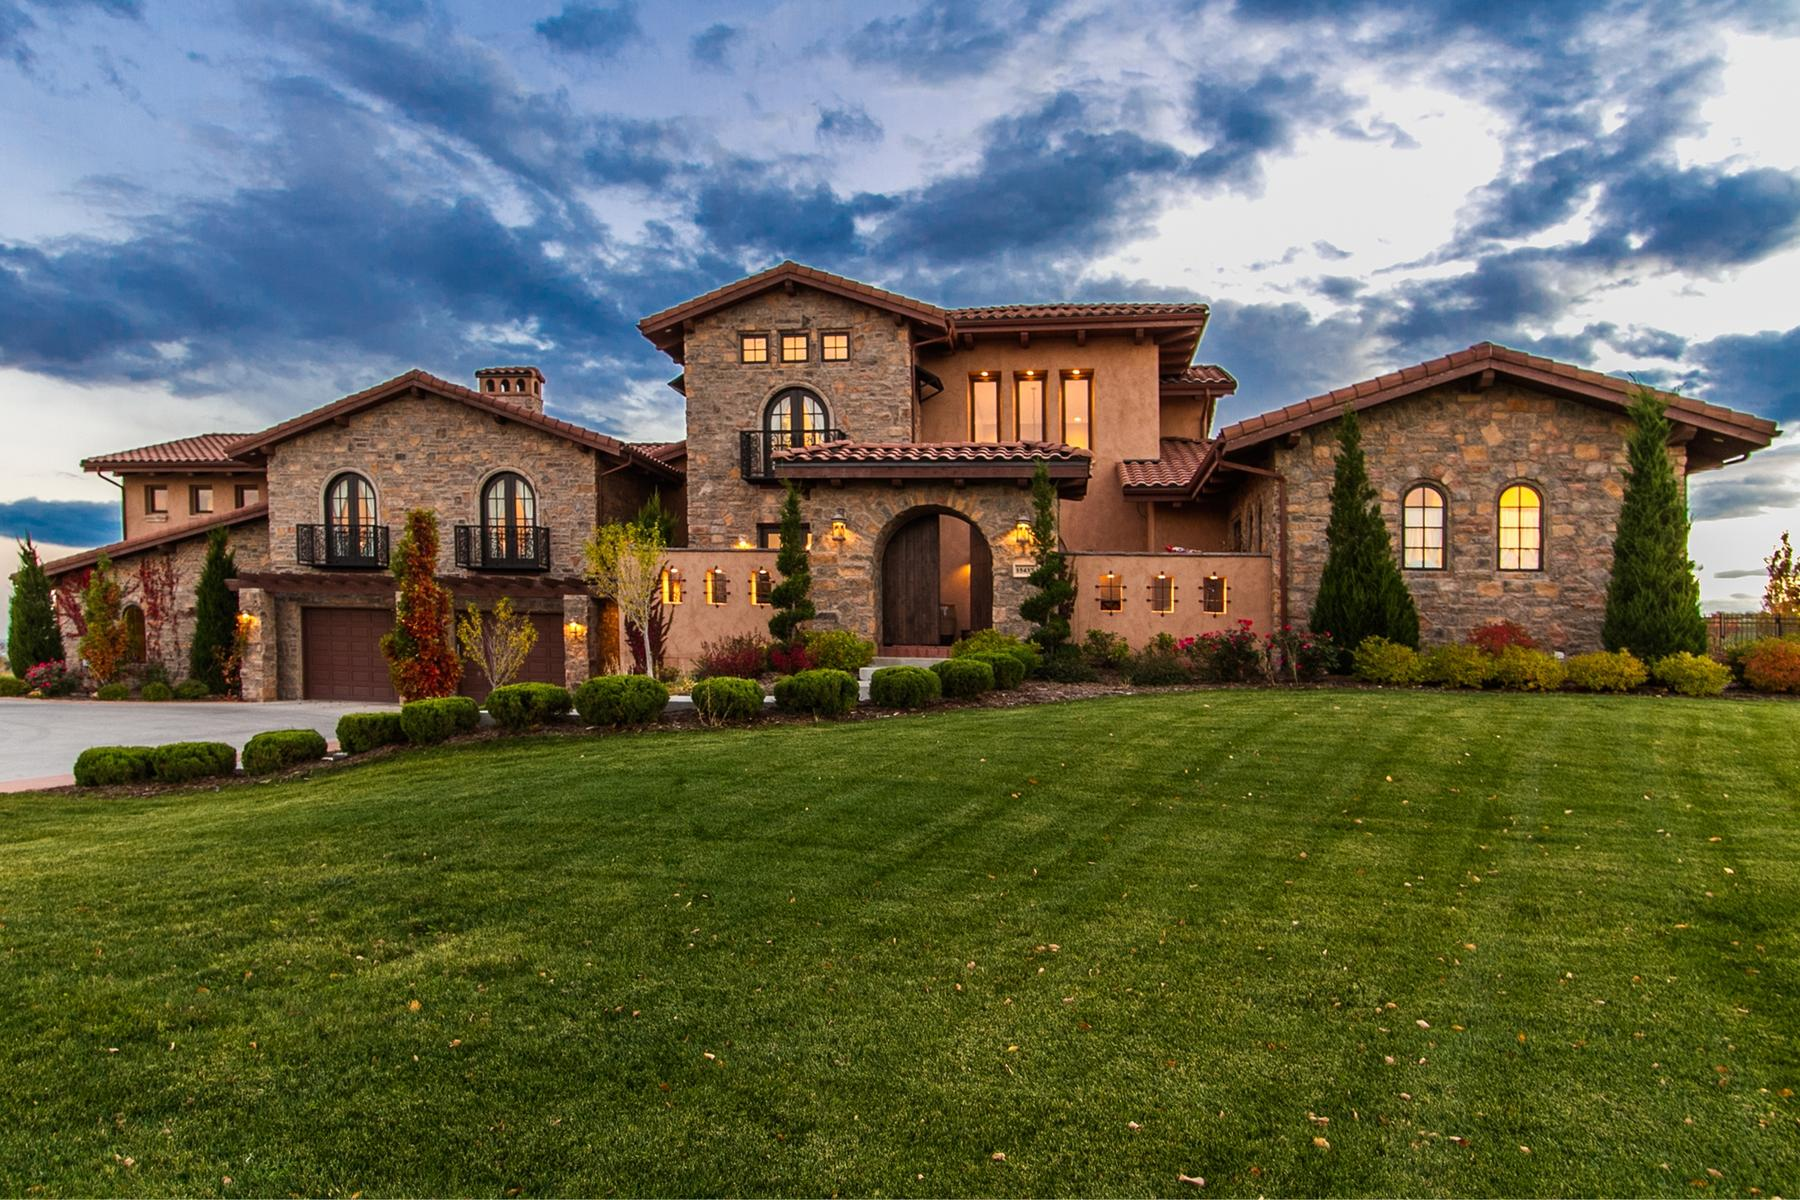 Single Family Homes for Active at Your Private Escape To Tuscany 15437 Mountain View Cir Broomfield, Colorado 80023 United States